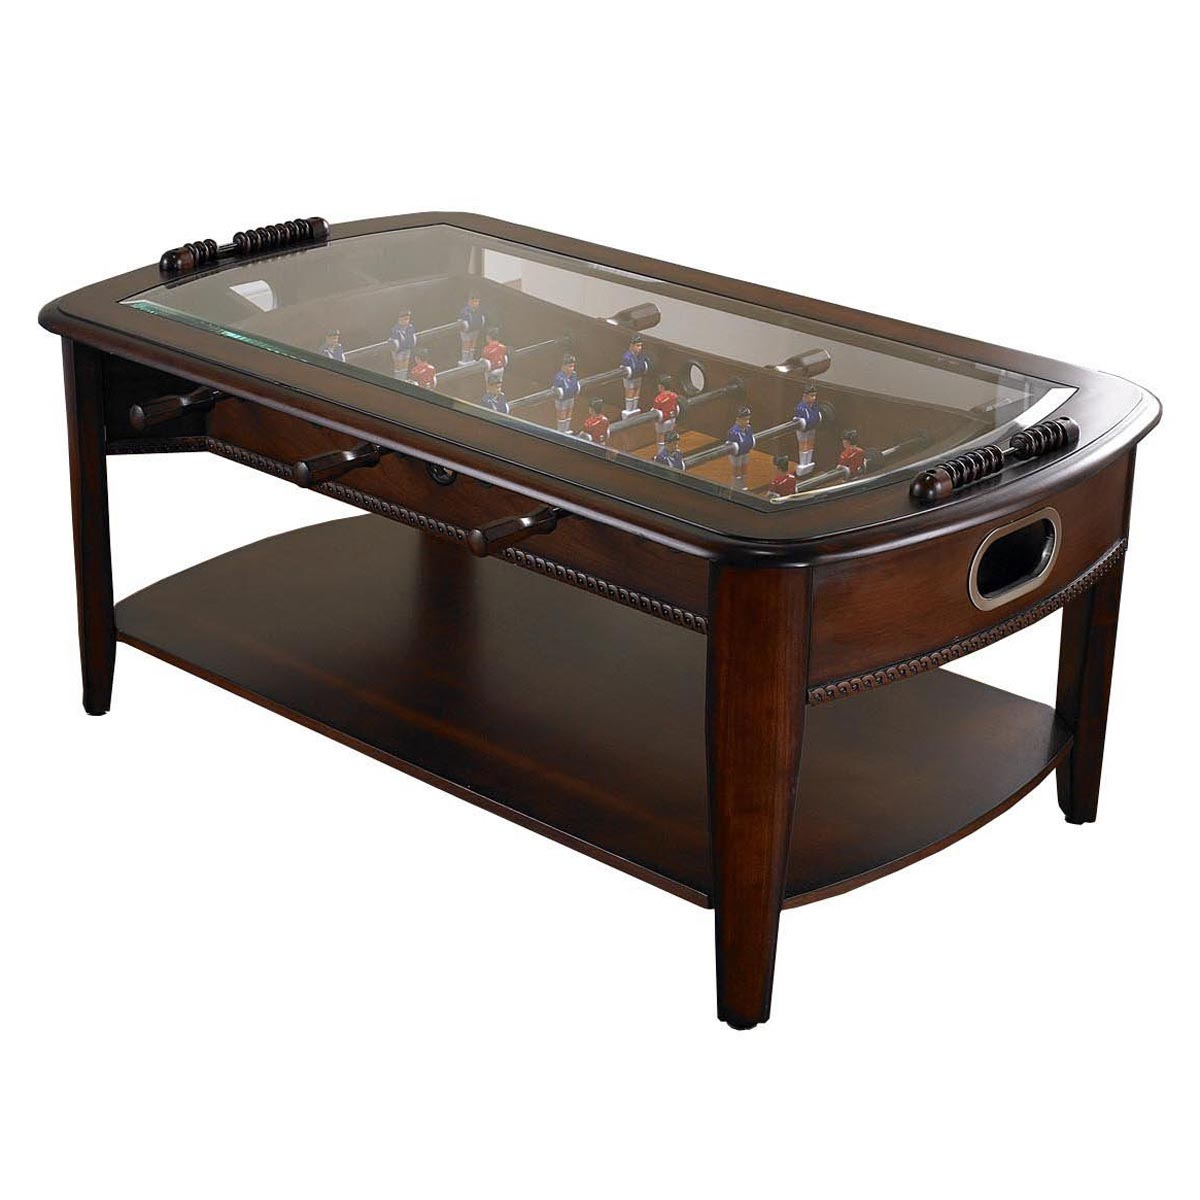 foosball coffee table with stools coffee table design ideas. Black Bedroom Furniture Sets. Home Design Ideas